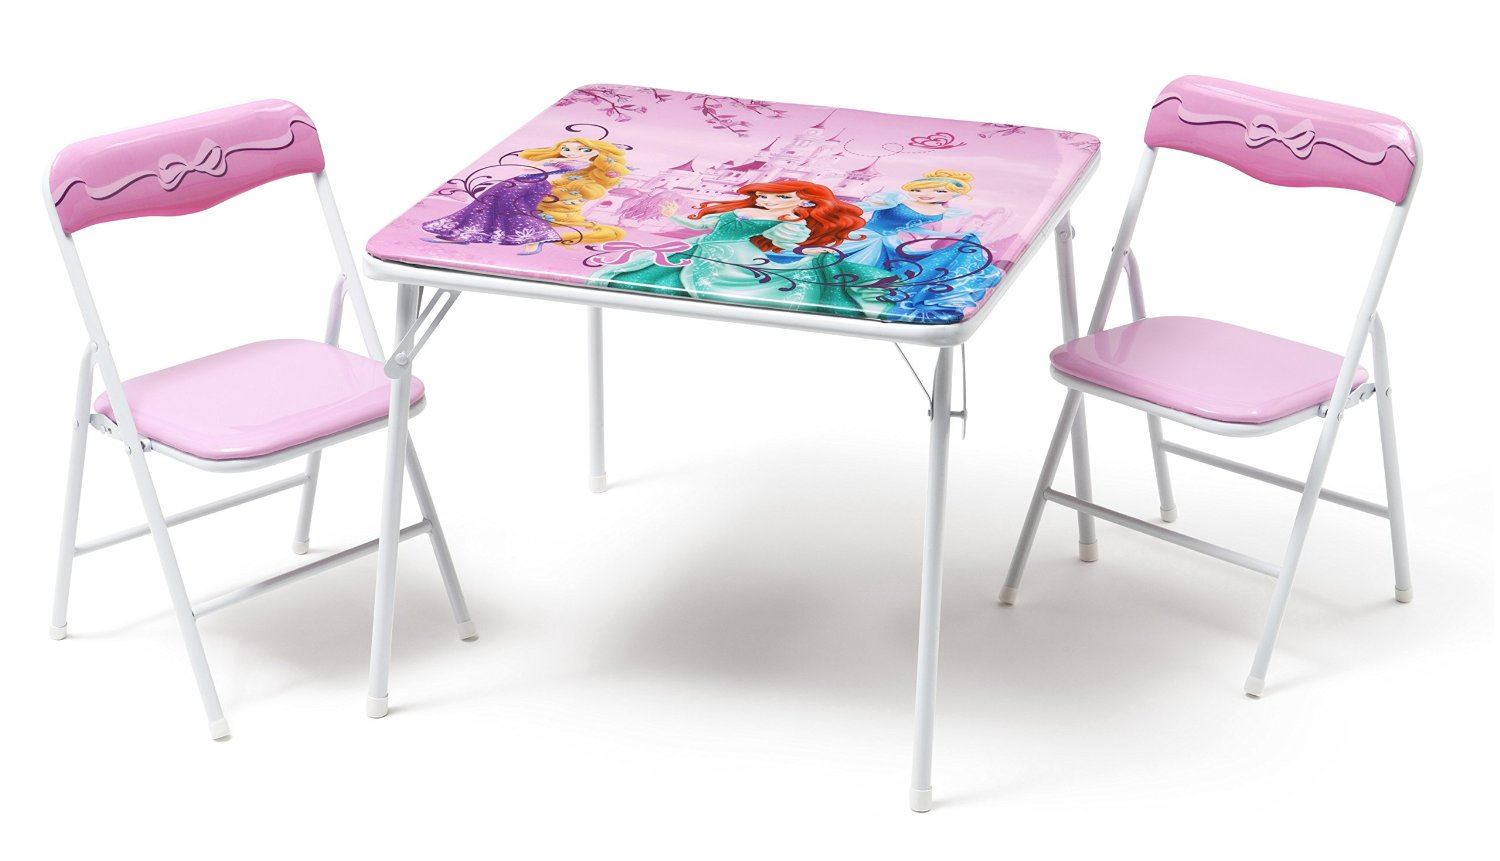 Disney Princess Childrens Metal Table And Two Chairs Set Kids Bedroom Playroom 5060451390650 Ebay